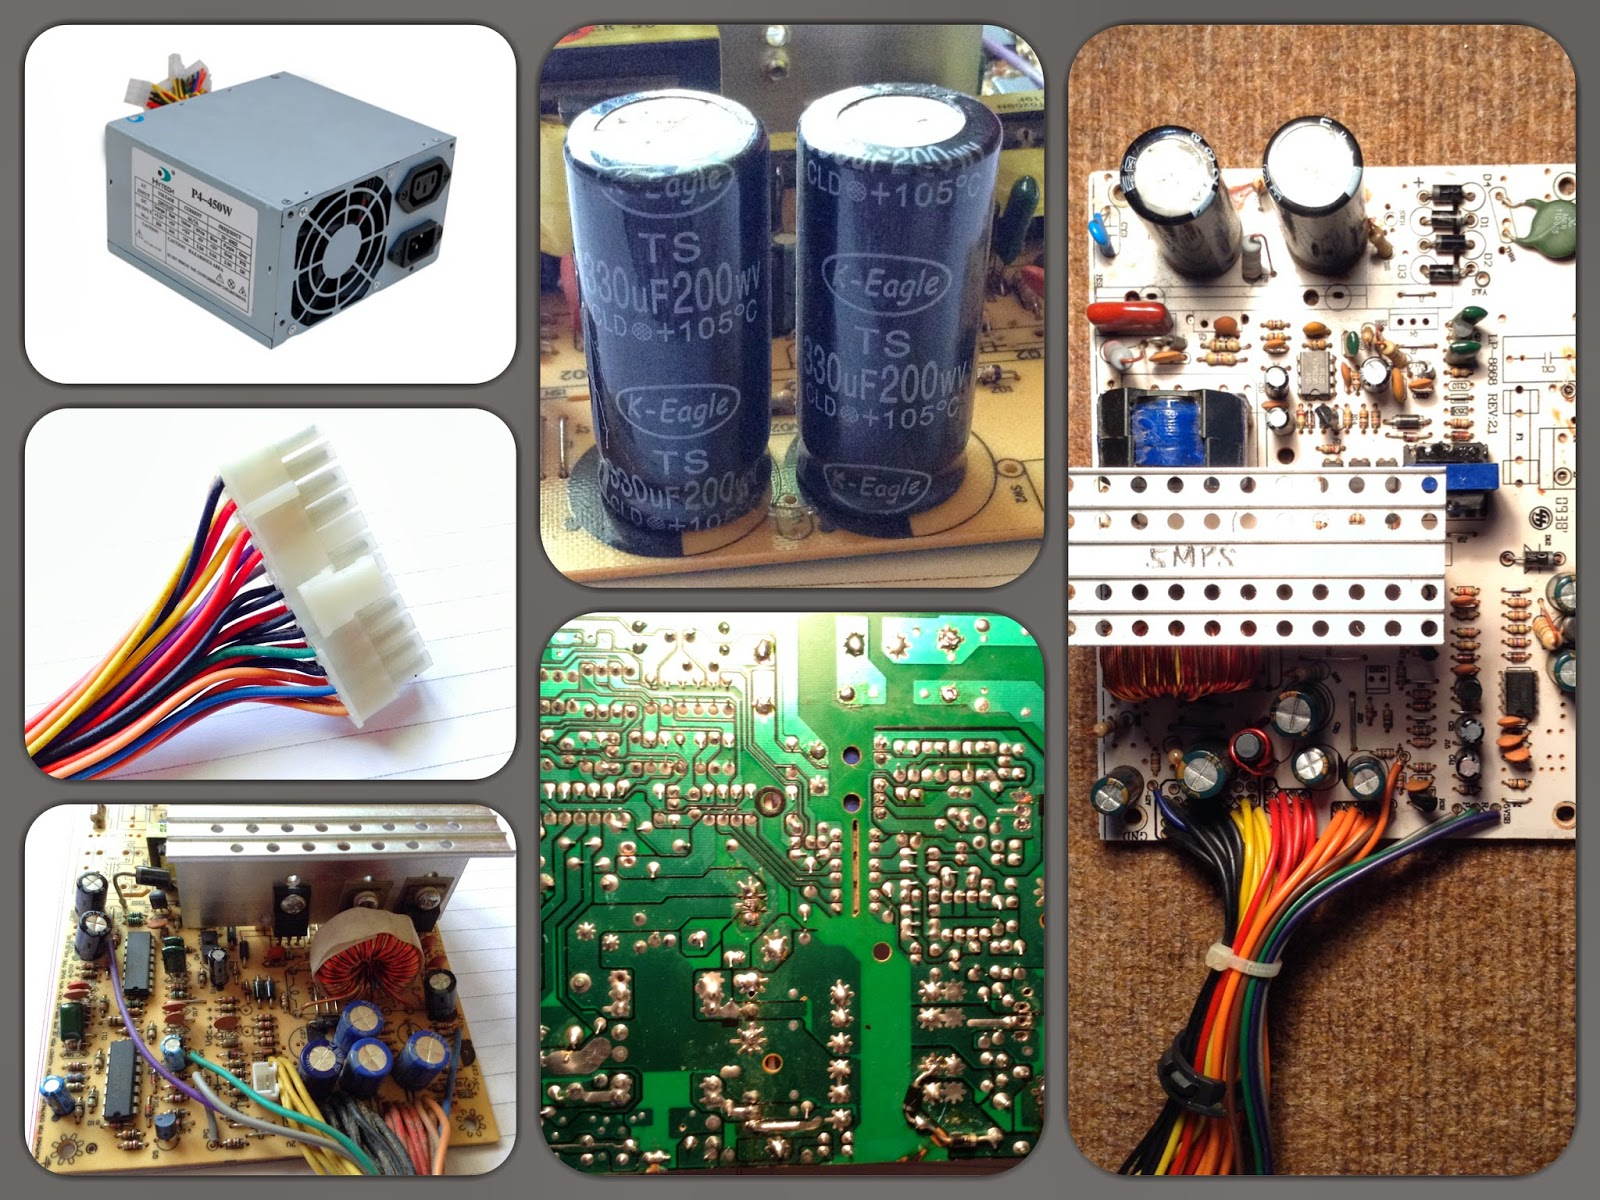 Smps Troubleshooting Electronics And Me Photo Interrupter Circuit For Digital Logic Well Stands Switch Mode Power Supply